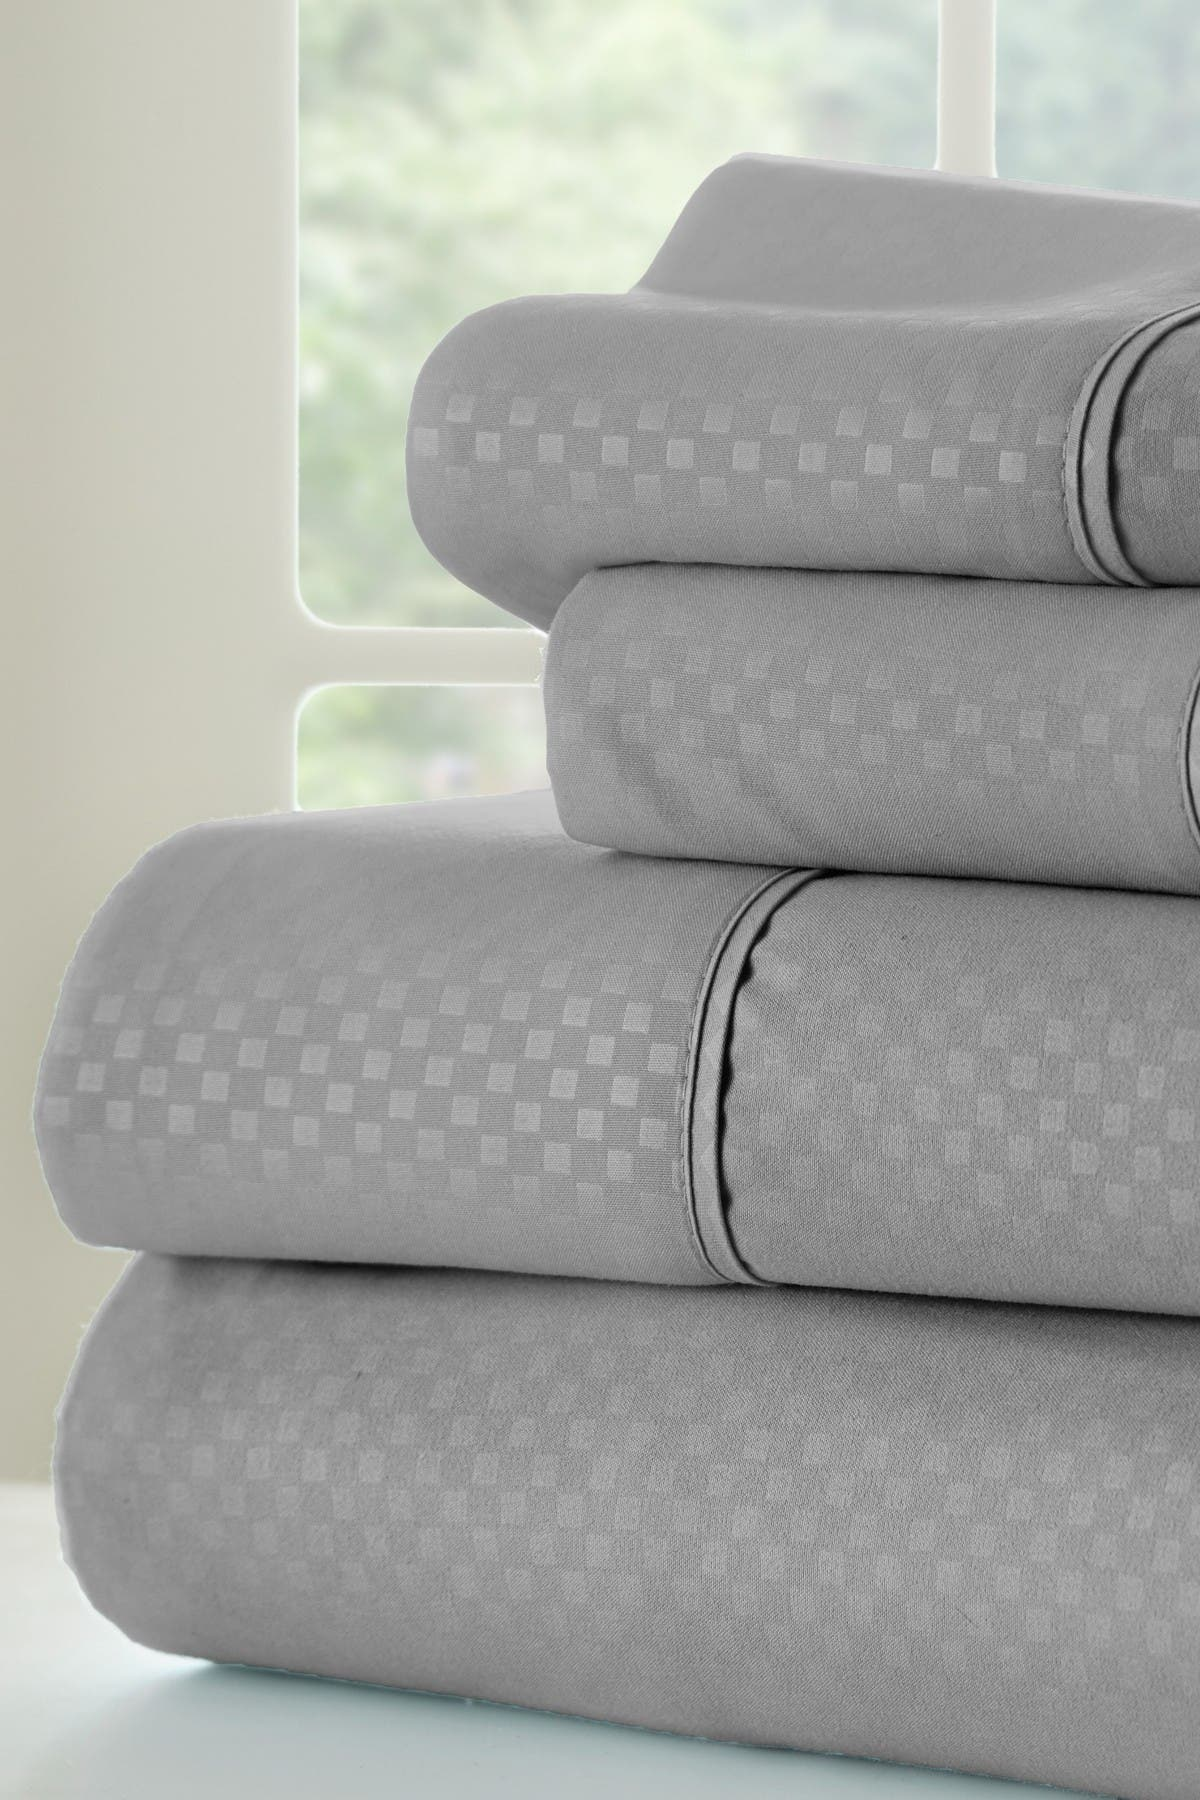 Image of IENJOY HOME Hotel Collection Premium Ultra Soft 4-Piece Checkered Queen Bed Sheet Set - Gray